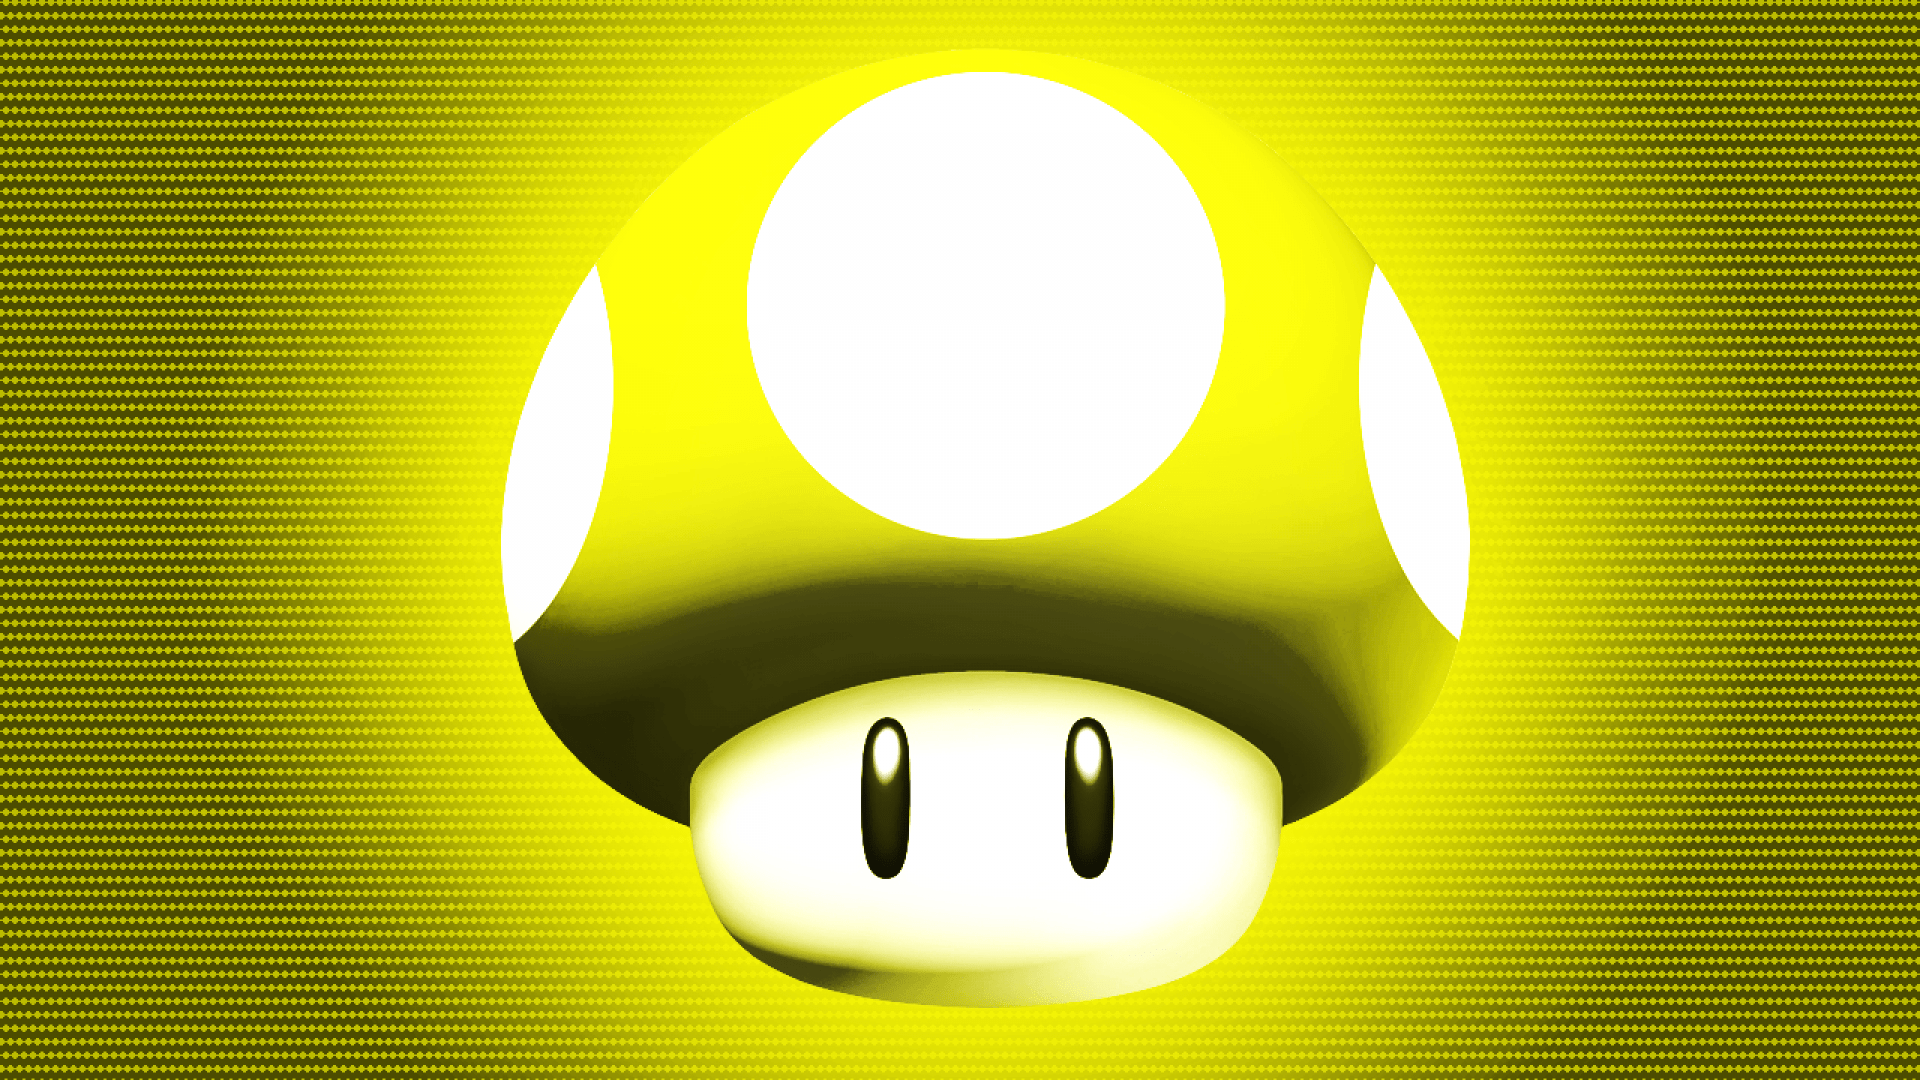 Super Mario Wallpaper Iphone 5 Yellow Mushroom Wallpaper Hd Wallpapers